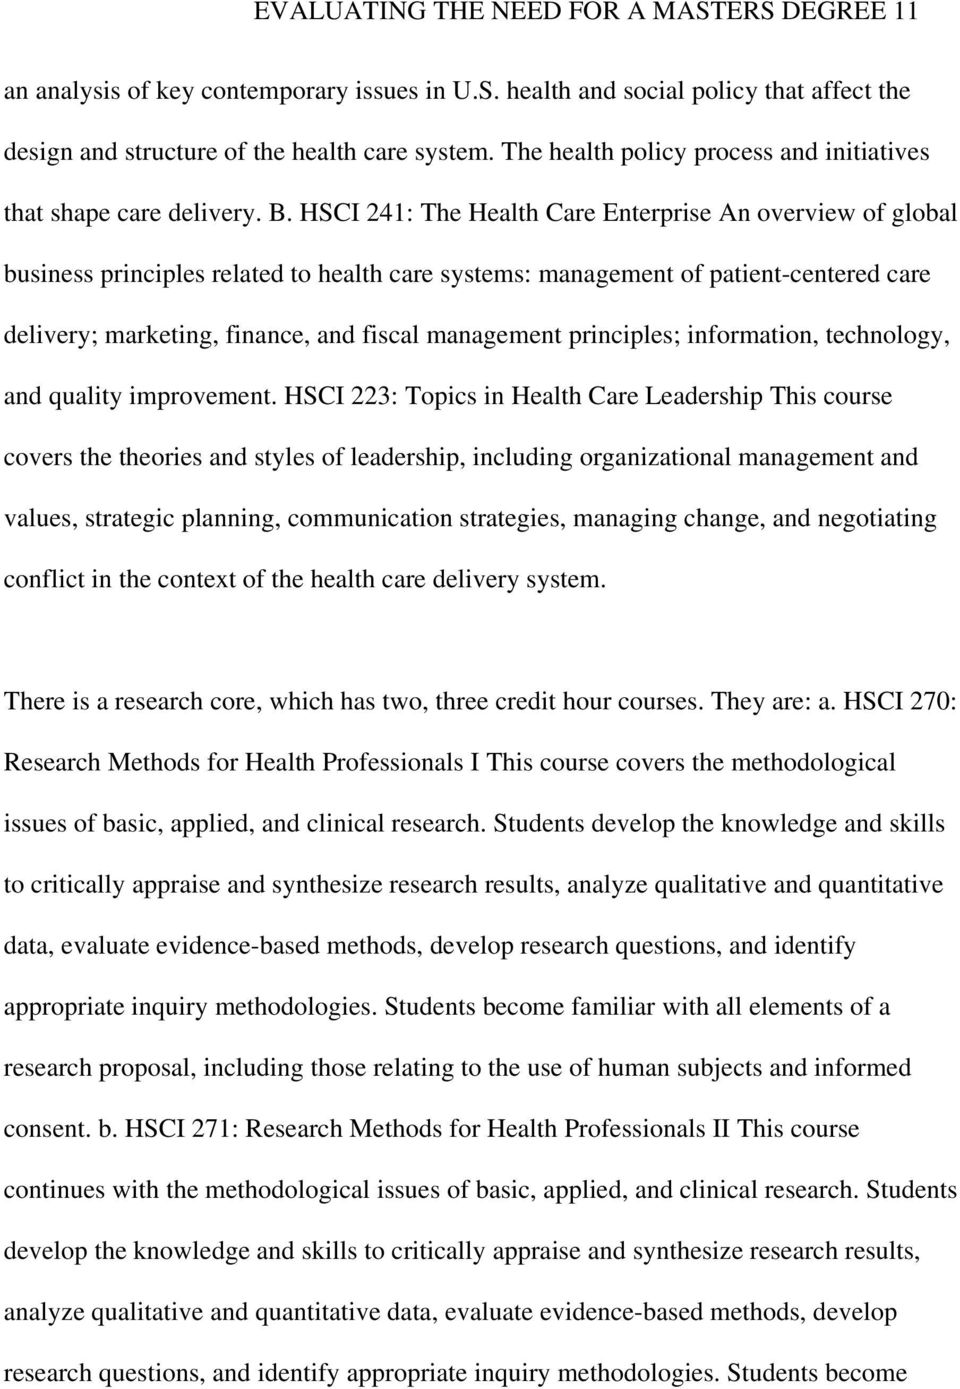 HSCI 241: The Health Care Enterprise An overview of global business principles related to health care systems: management of patient-centered care delivery; marketing, finance, and fiscal management